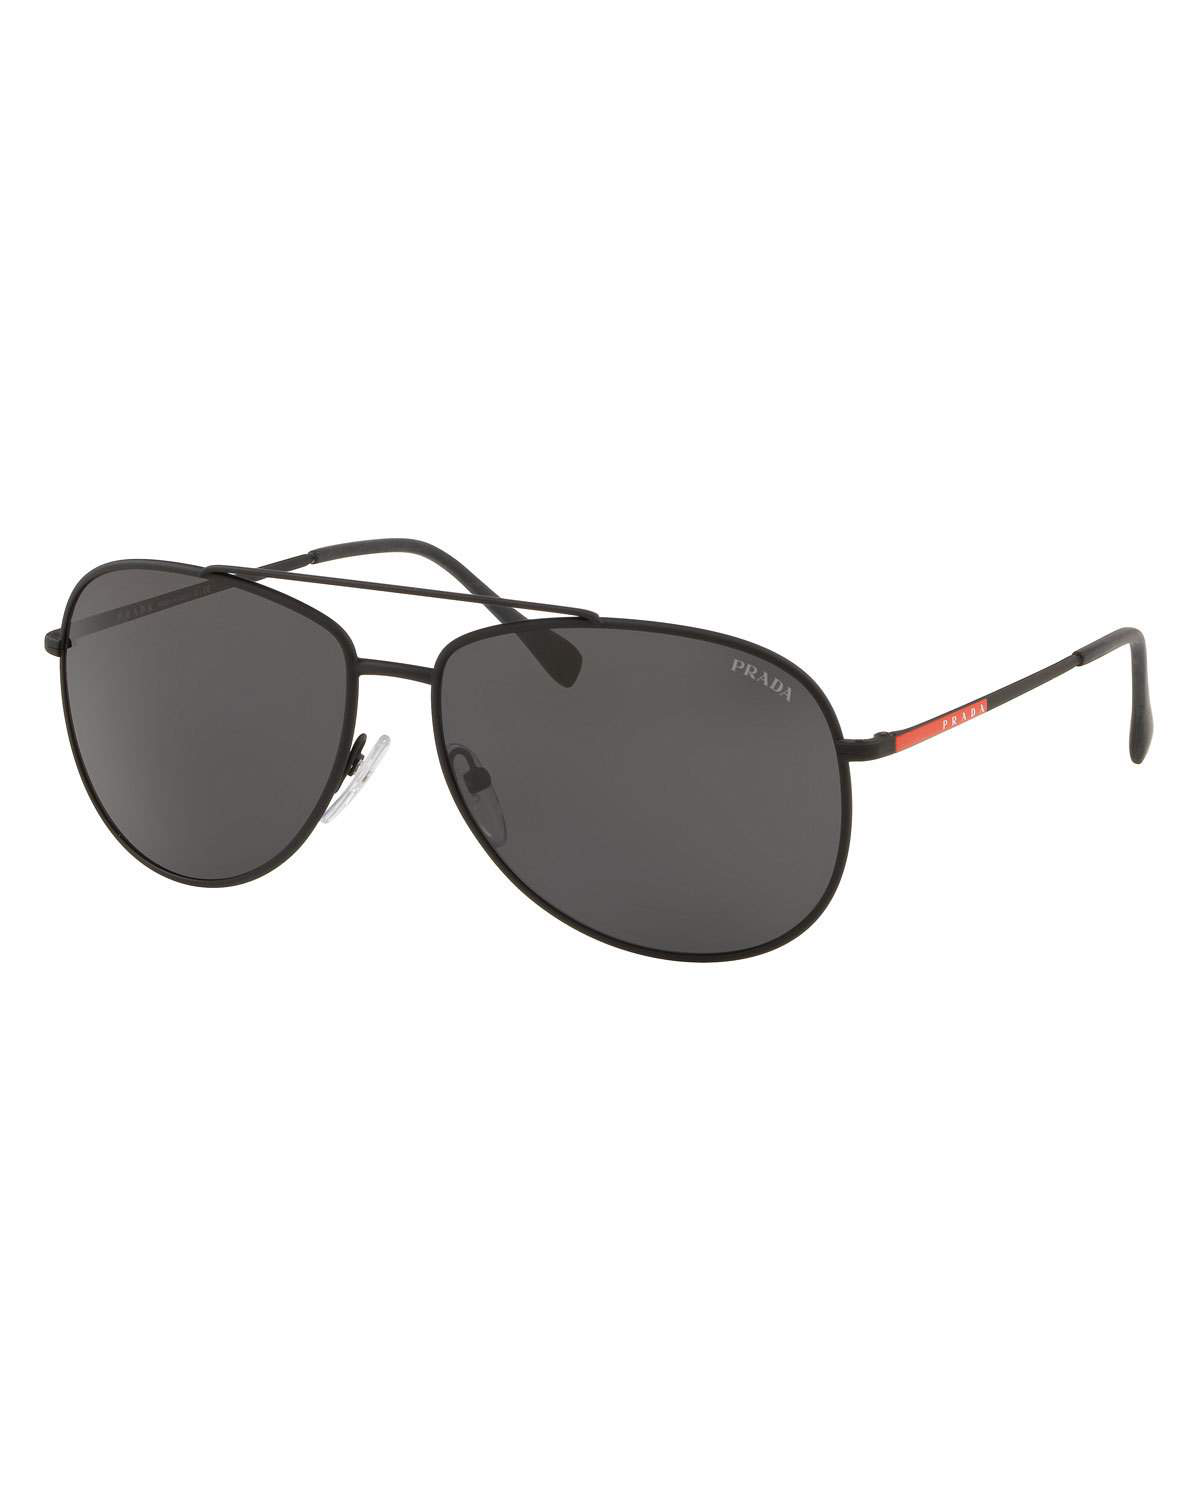 79b316a3fe2a Prada Men s Metal Aviator Sunglasses In Black Gray